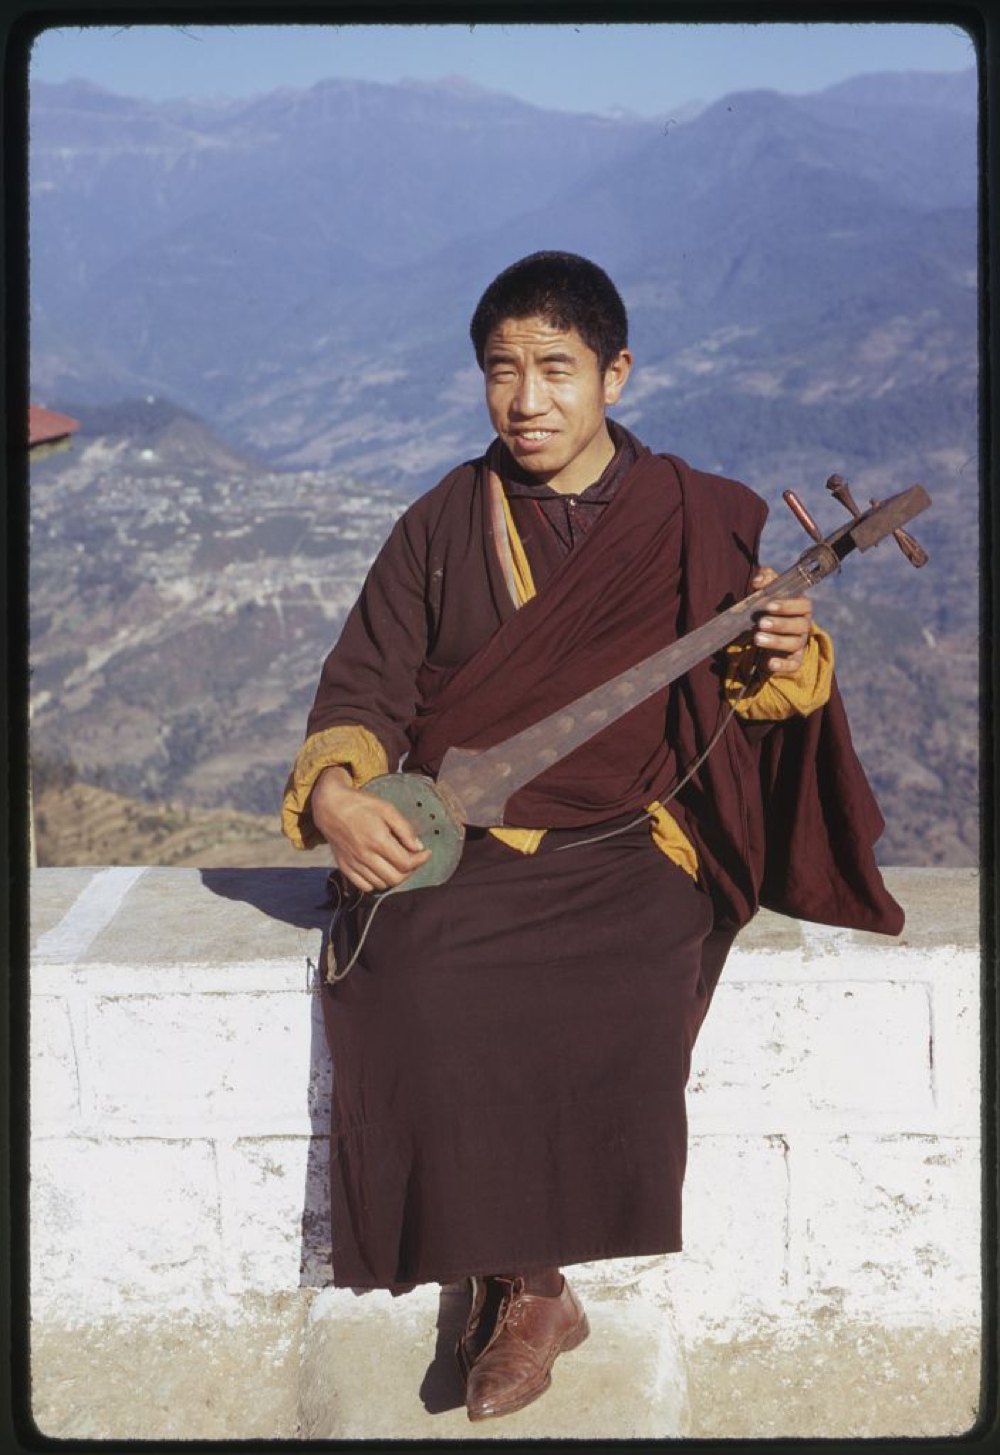 Photograph shows a monk, seated on a wall, playing a lute, Rumtek, Sikkim.